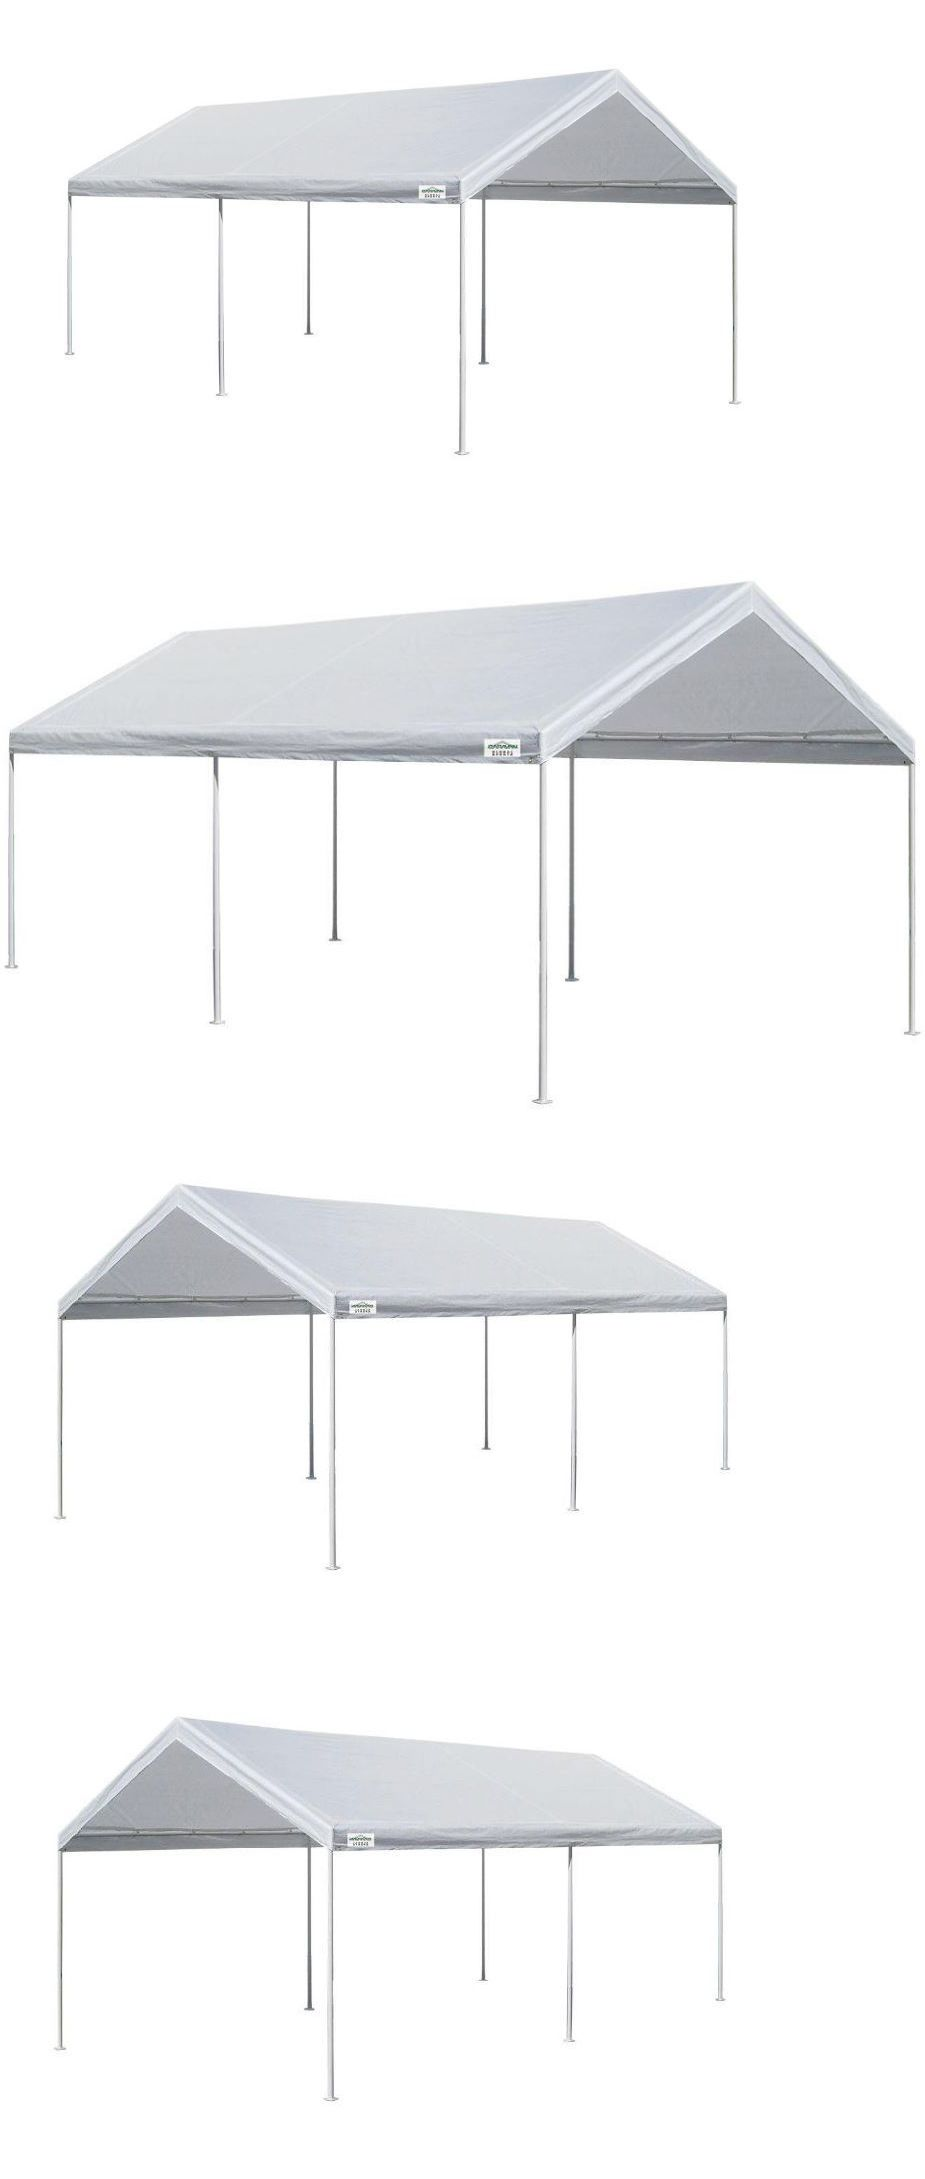 Awnings and Canopies 180992: Canopy Tent Carport Portable Garage ...